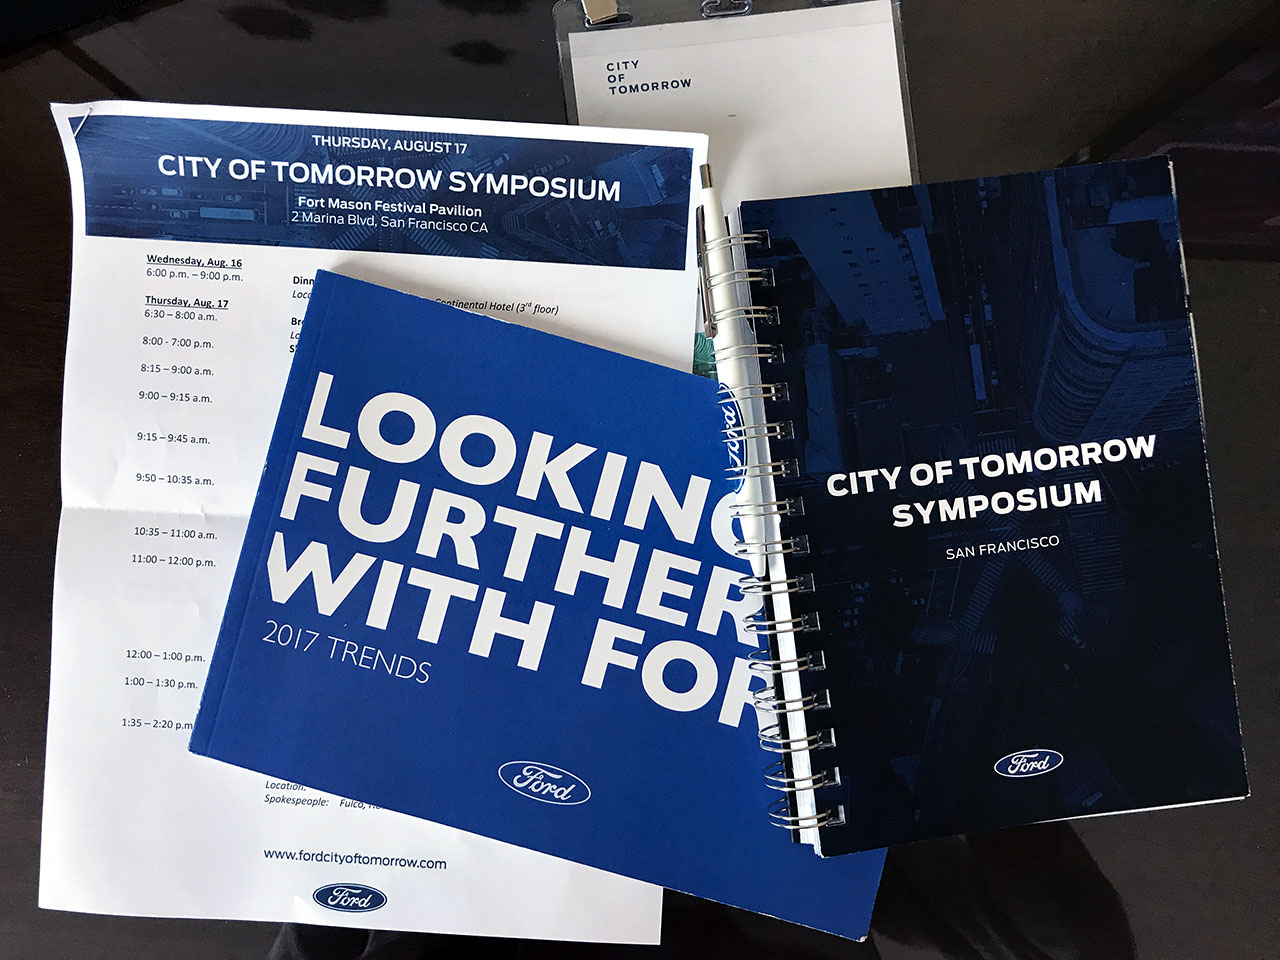 Ford City Of Tomorrow 6